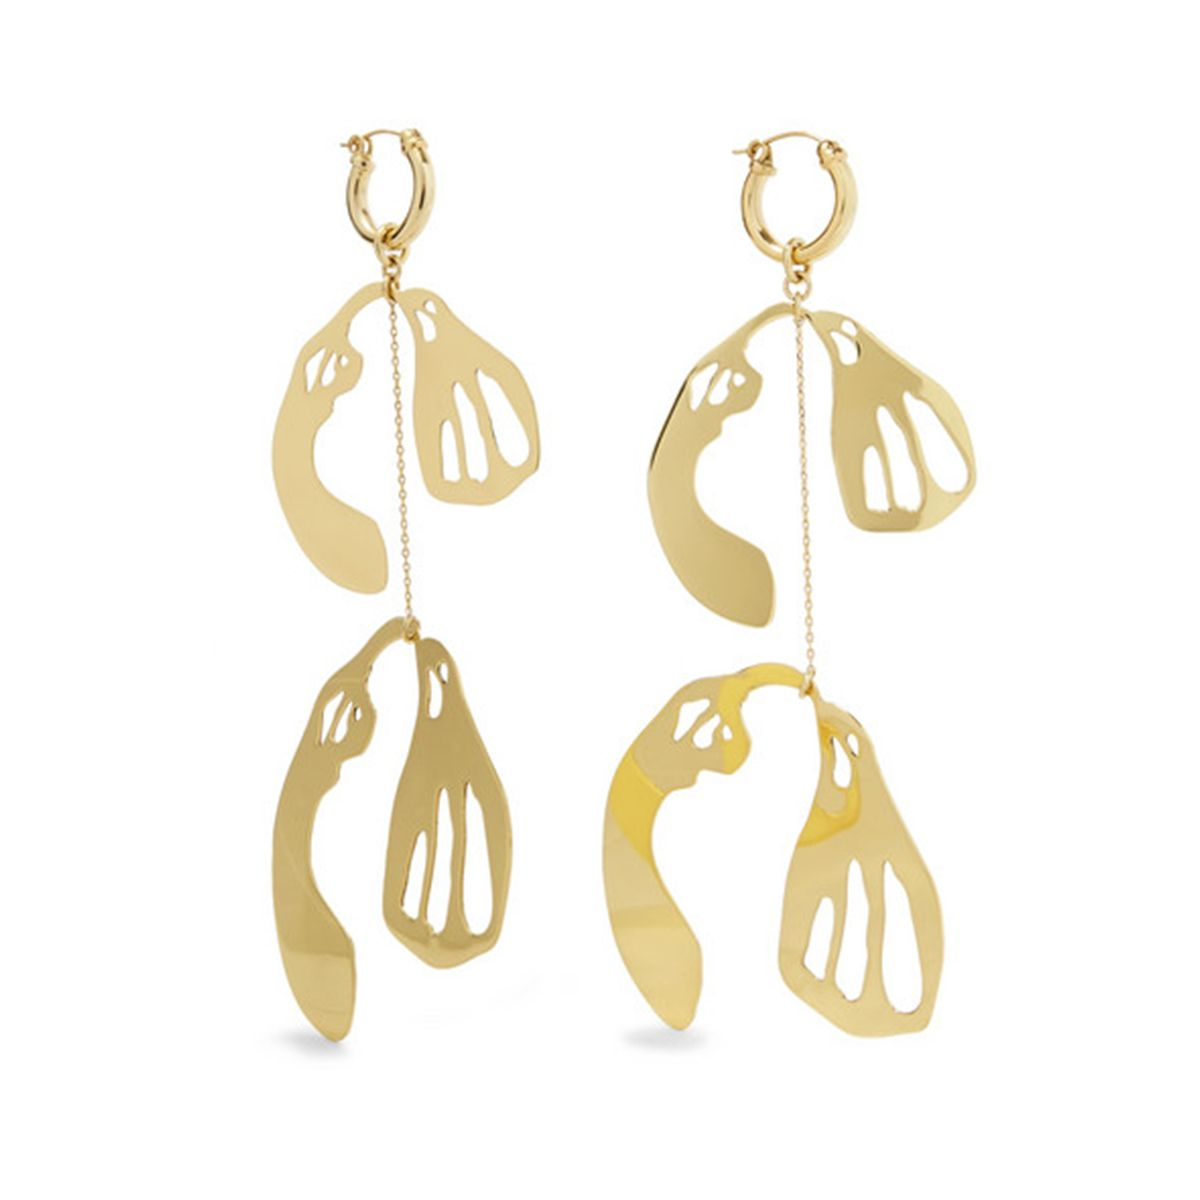 Supercluster gold-plated earrings